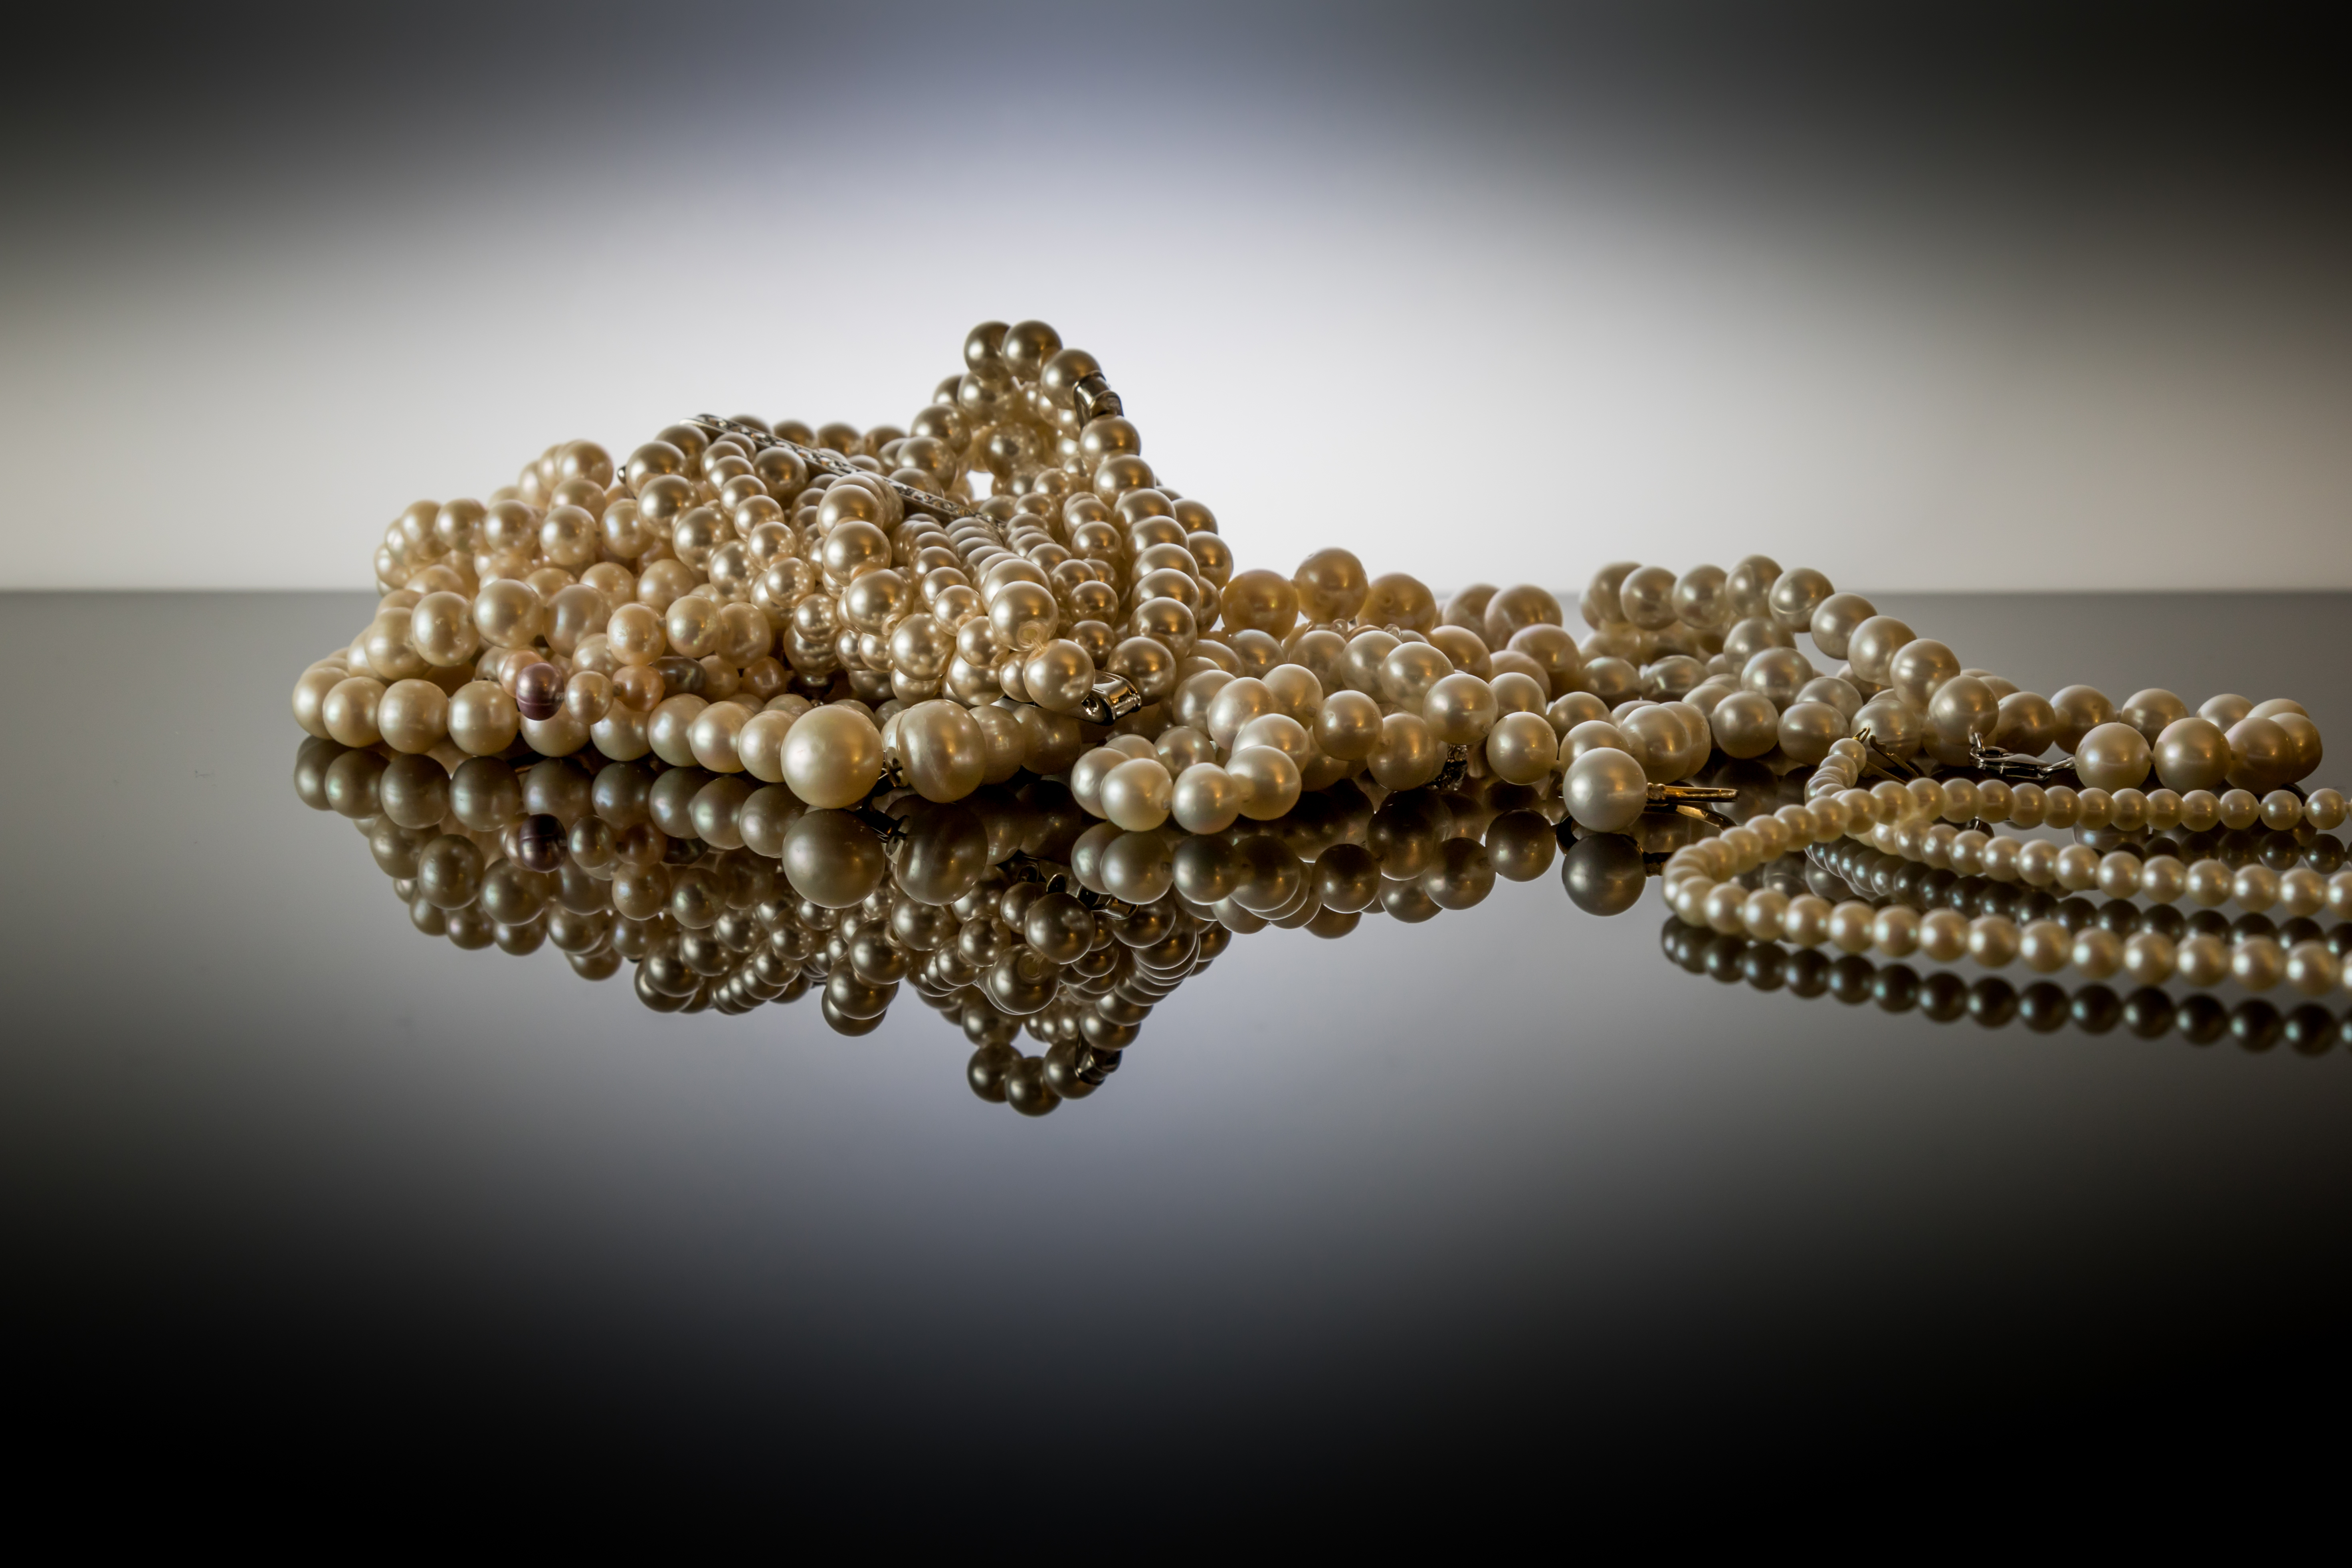 PEARLS ON A REFLECTIVE SURFACE.